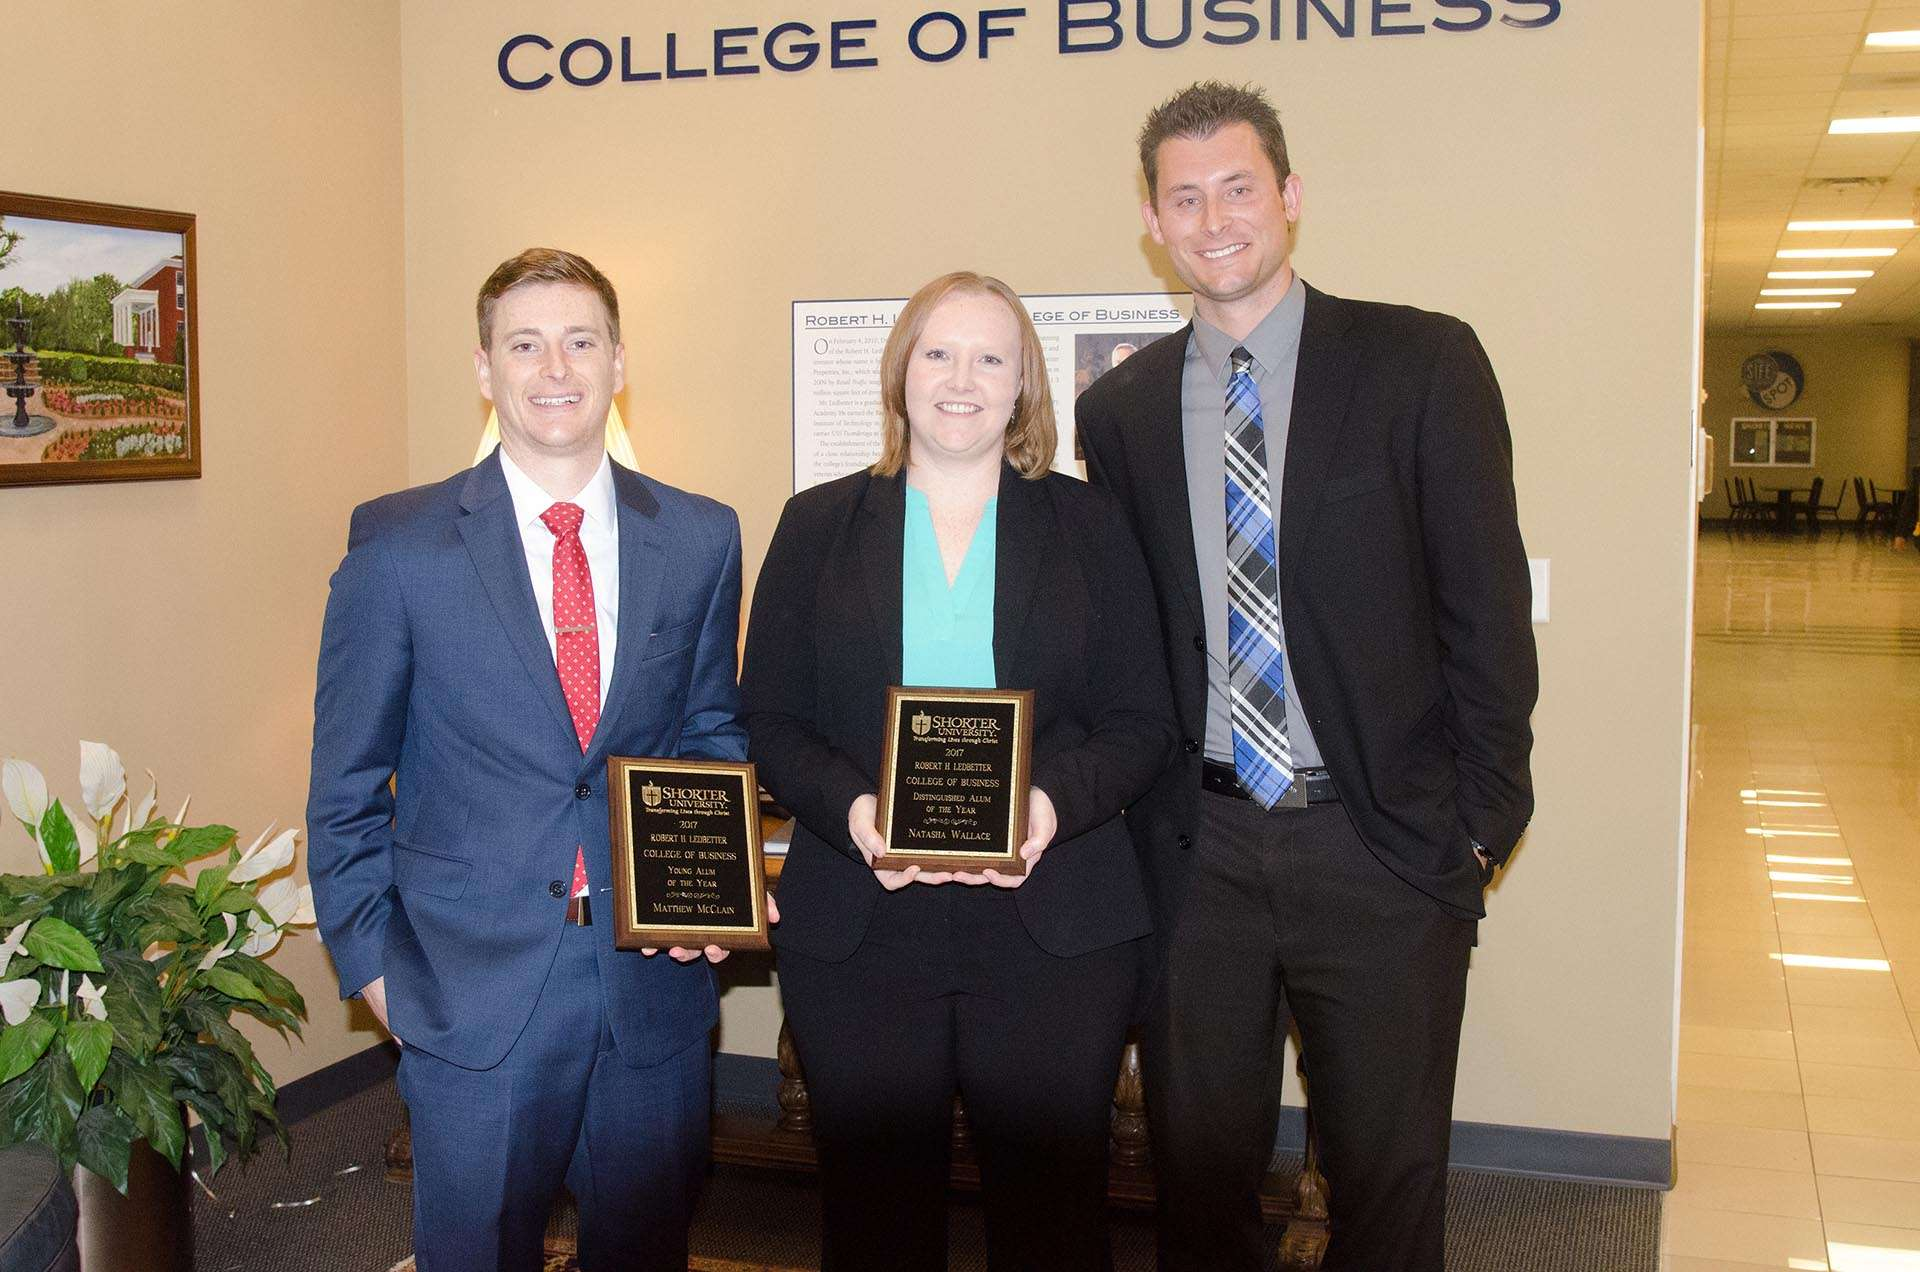 Natasha Wallace, a 2009 graduate, received the Distinguished Alumna of the Year Award, and Matt McClain, a 2011 graduate, received the Young Alumnus of the Year Award. The awards were presented by Dr. Heath Hooper, Dean of the Ledbetter College of Business.